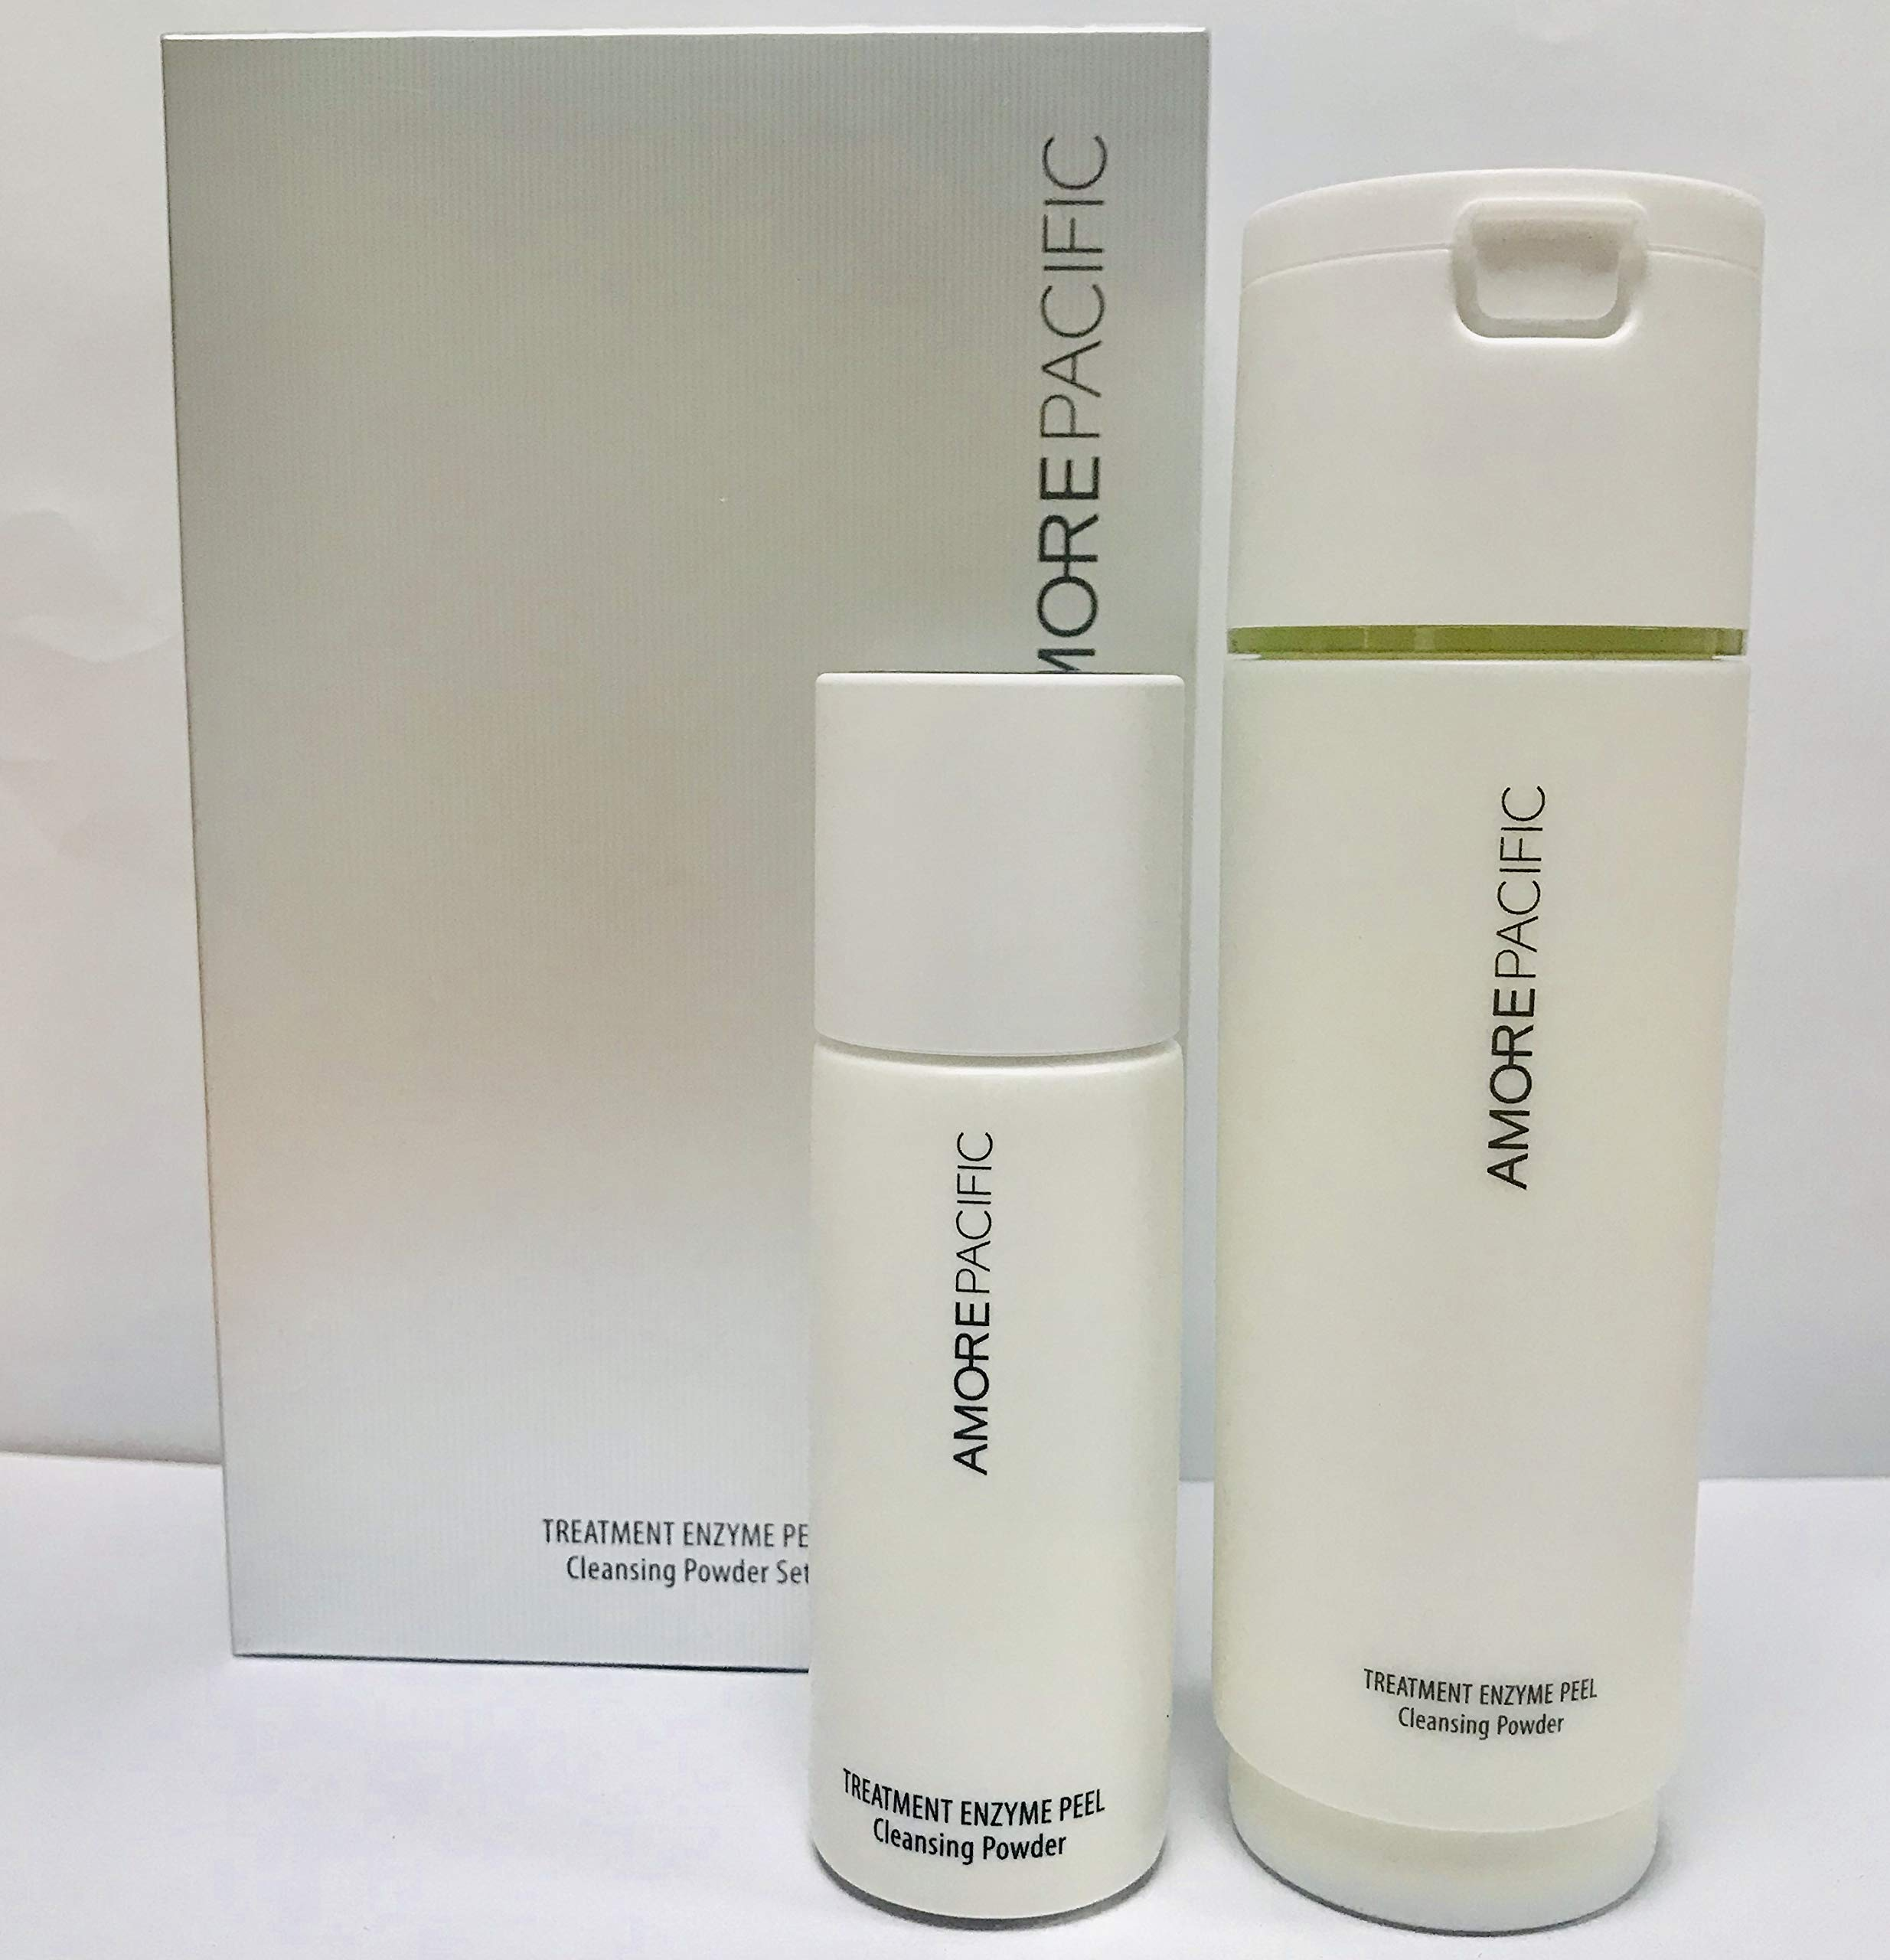 Amore Pacific Treatment Enzyme Peel Cleansing Powder Set (50g + 15g)